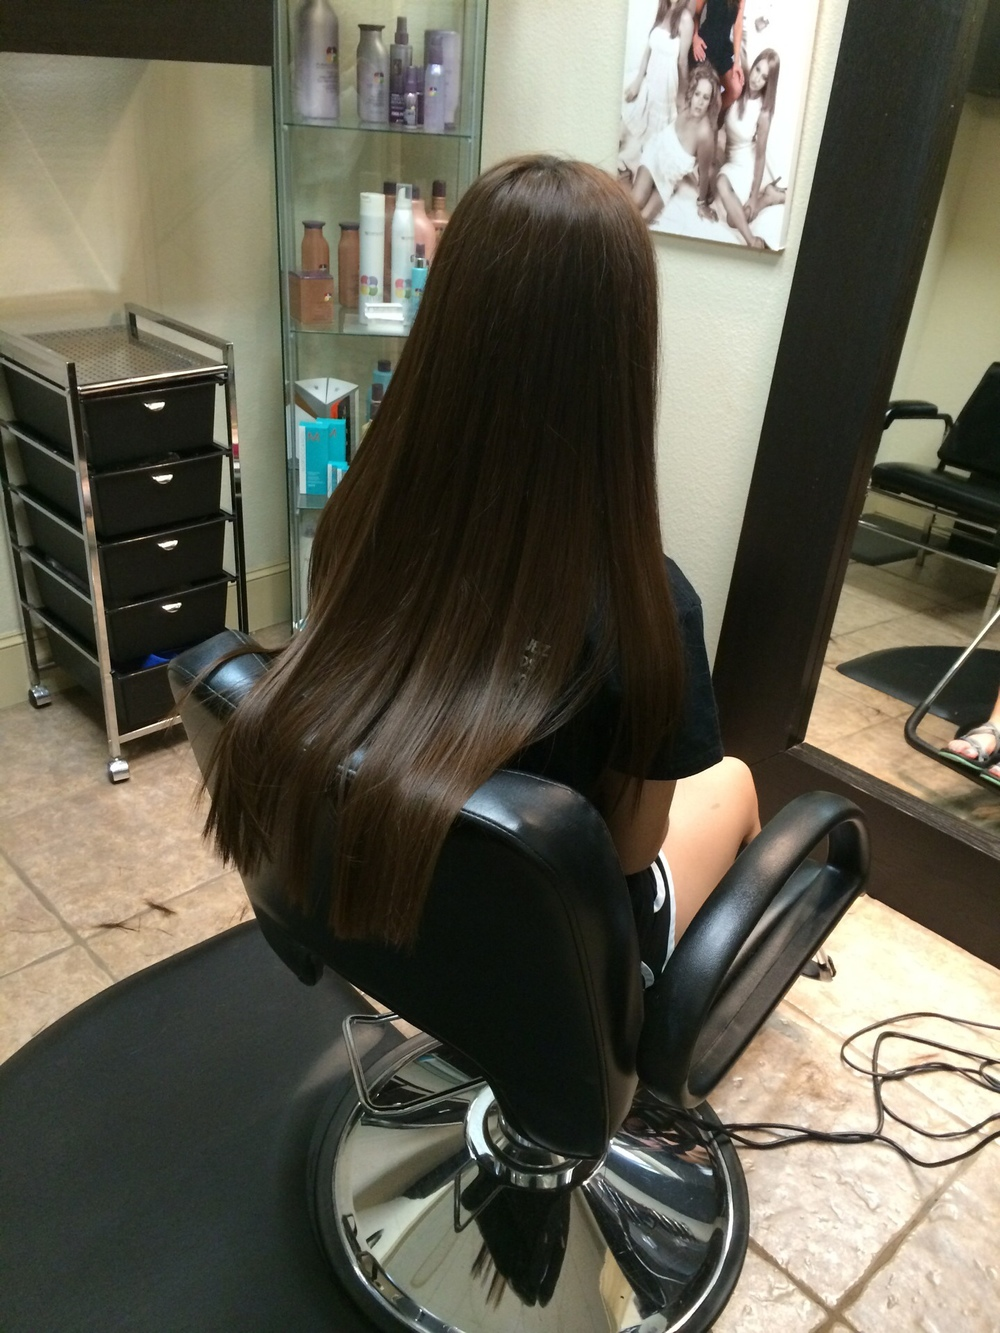 shiva_hair_salon_plano12.jpg